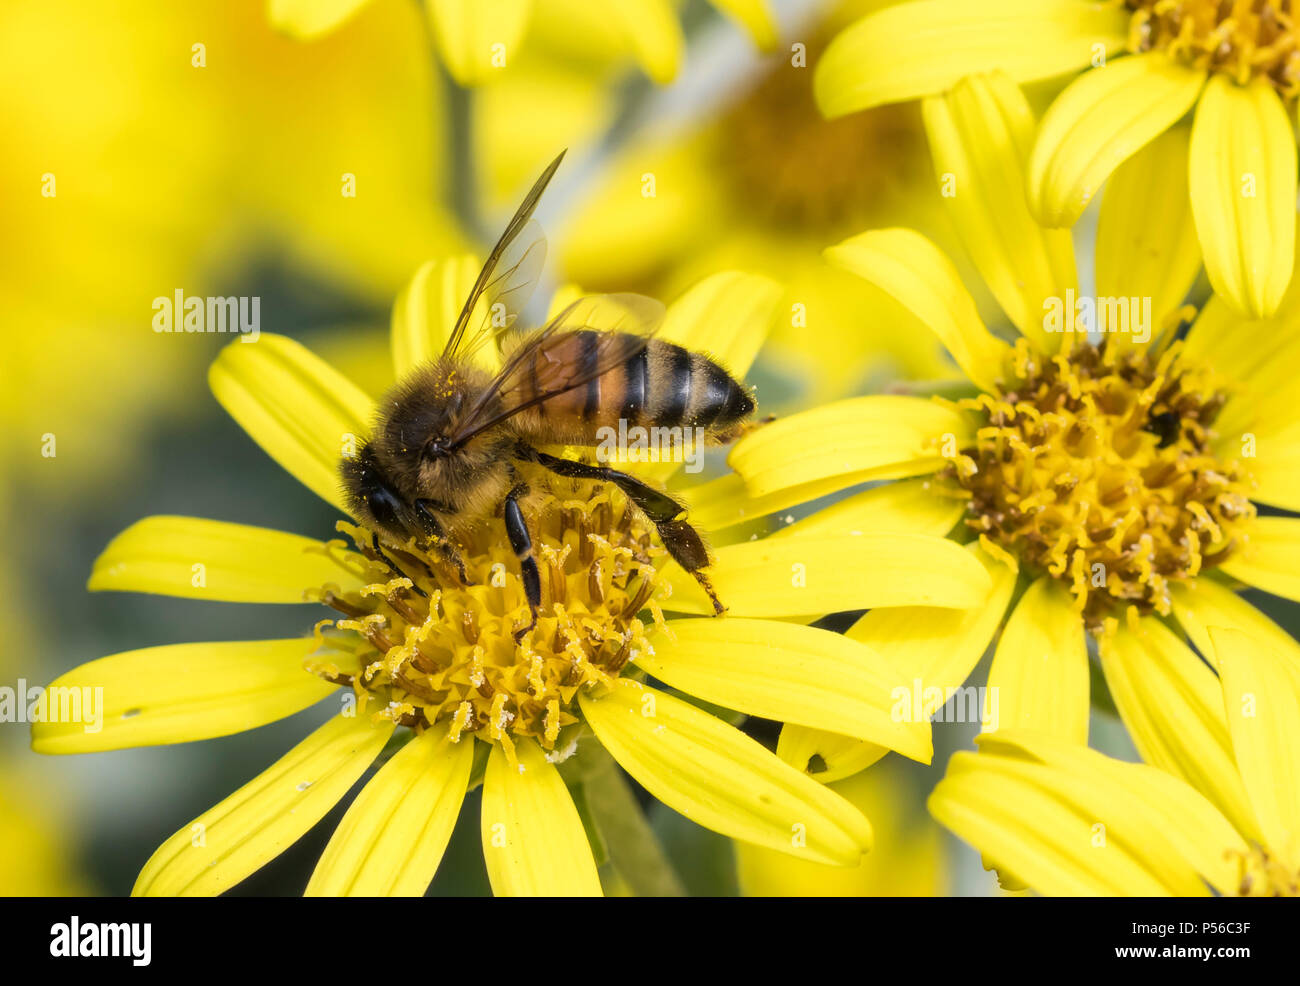 Western Honey Bee (Apis mellifera) on a yellow flower in Summer in West Sussex, England, UK.Pollination. Pollinating. - Stock Image